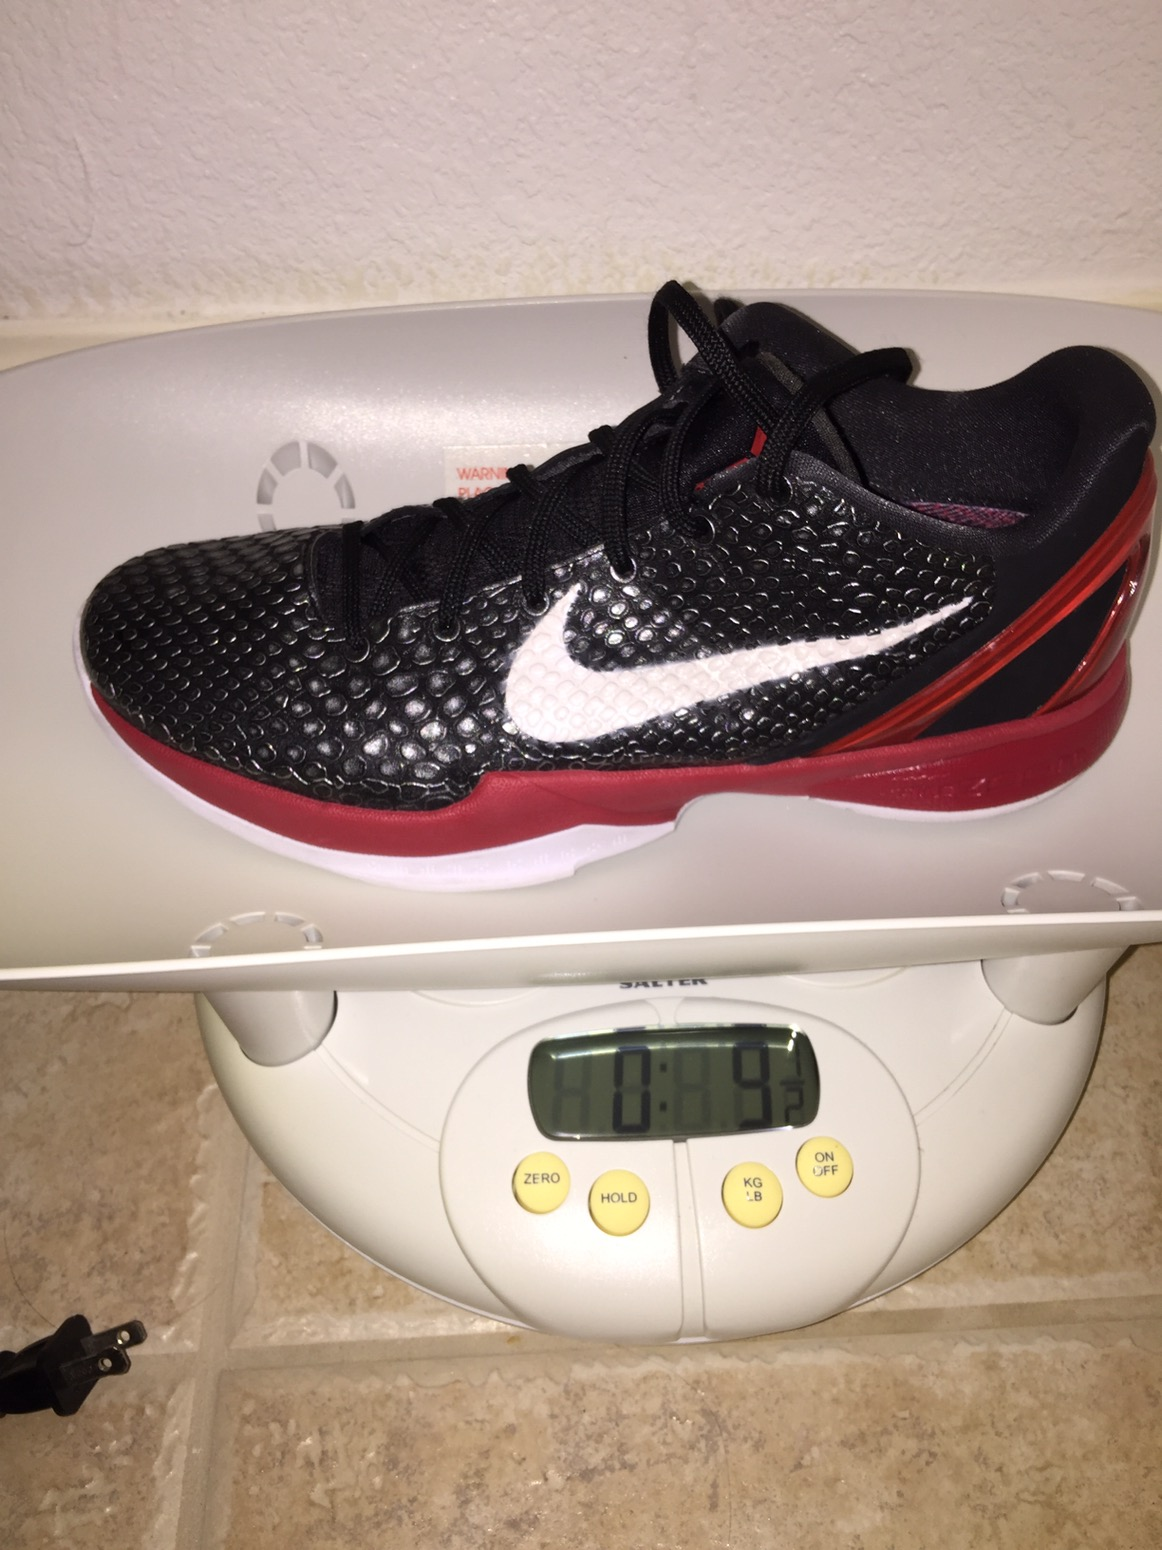 355de8d7a1c3 The Archive  Nike Zoom Kobe VI Performance Review and Analysis ...